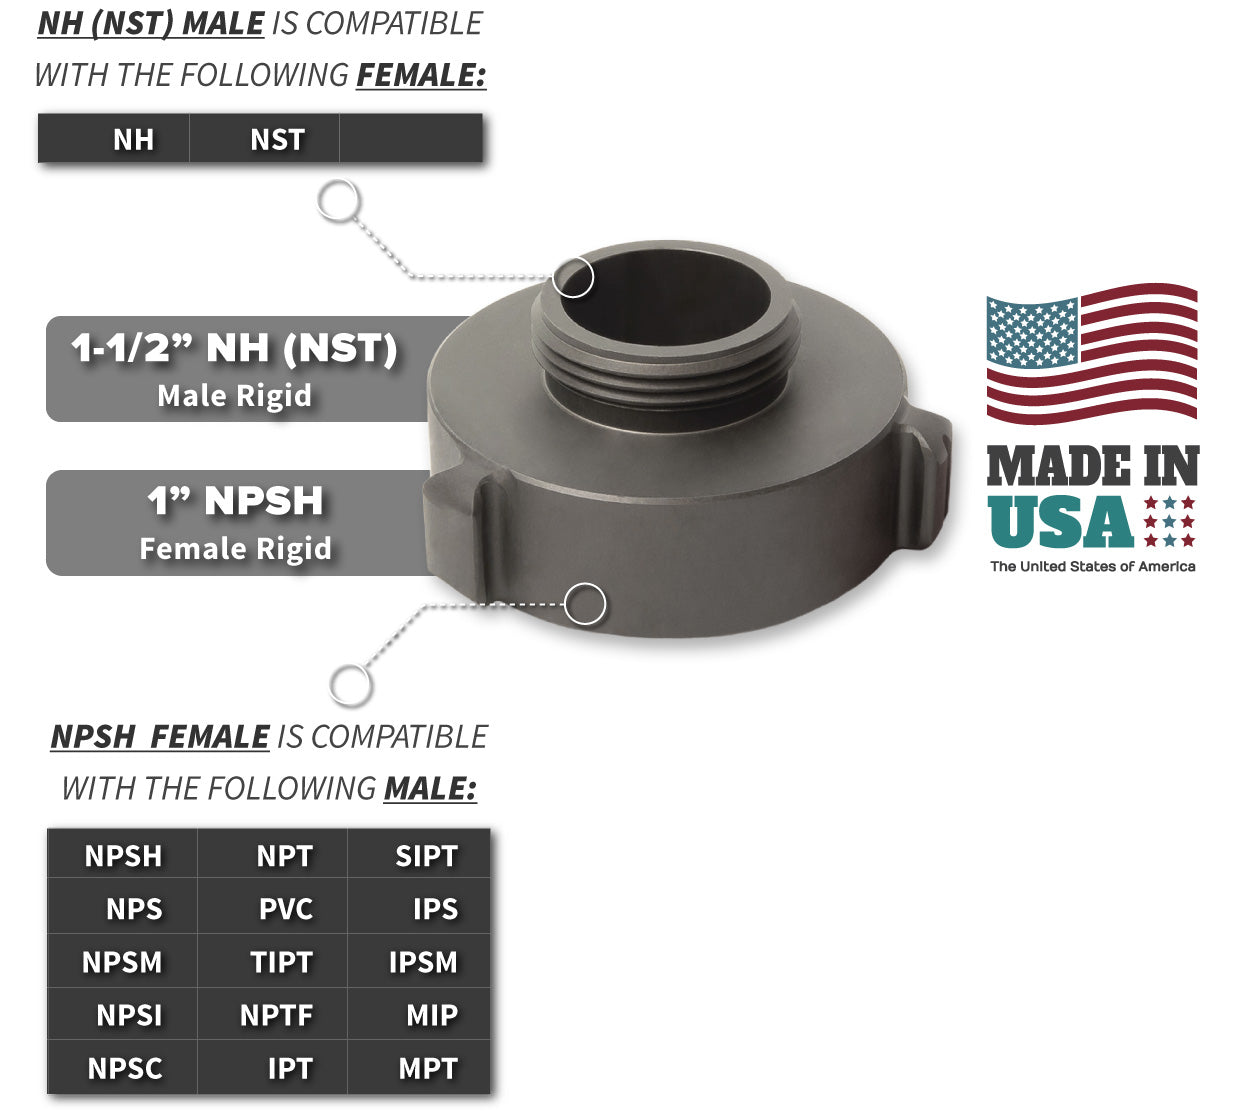 1 Inch NPSH Female x 1.5 Inch NH-NST Male Compatibility Thread Chart